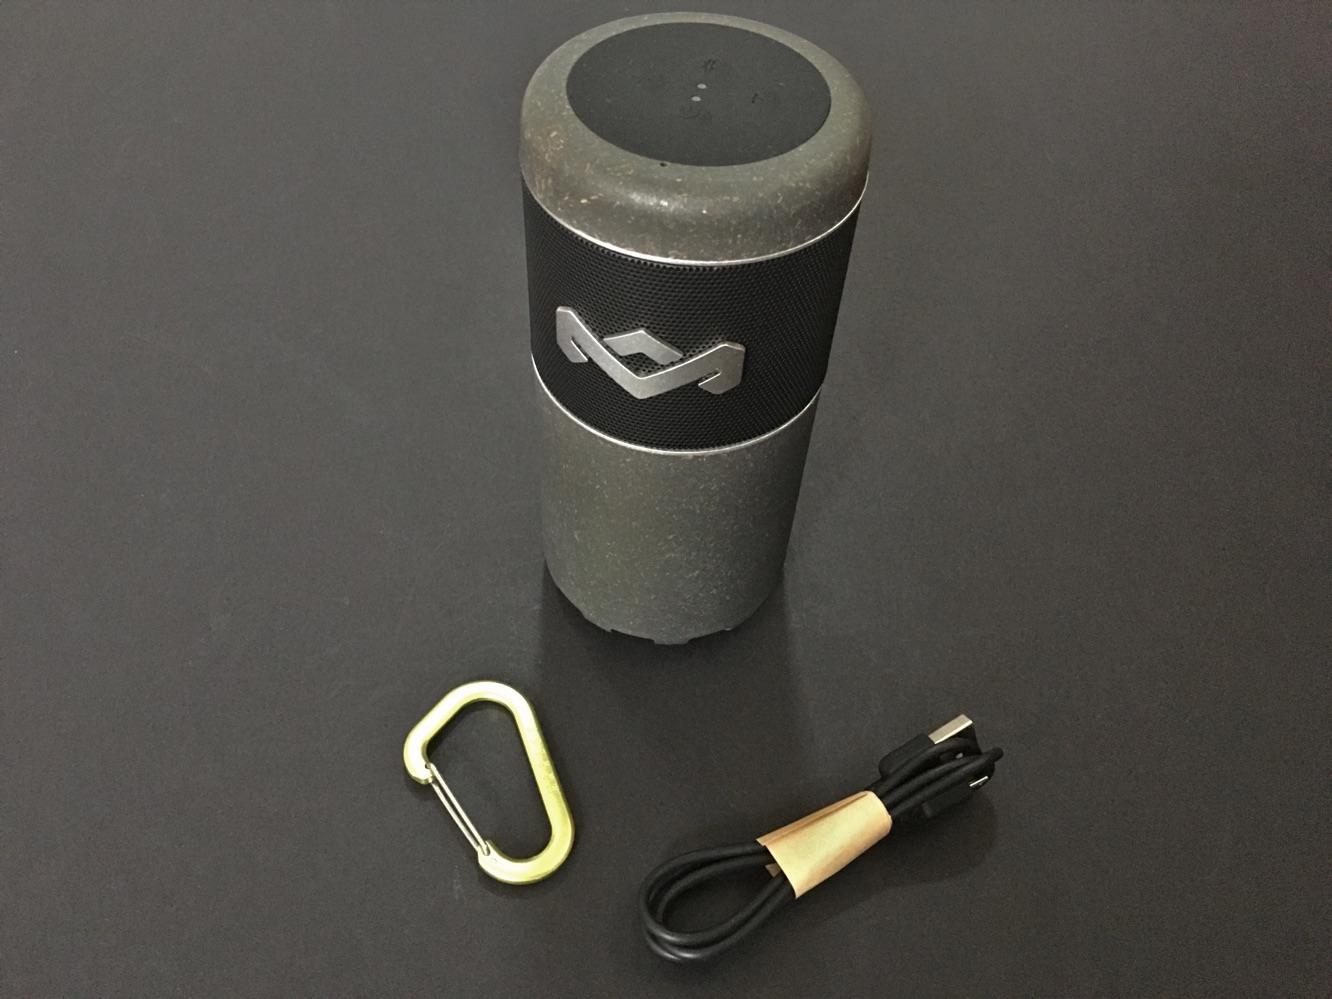 marley chant sport portable audio system review